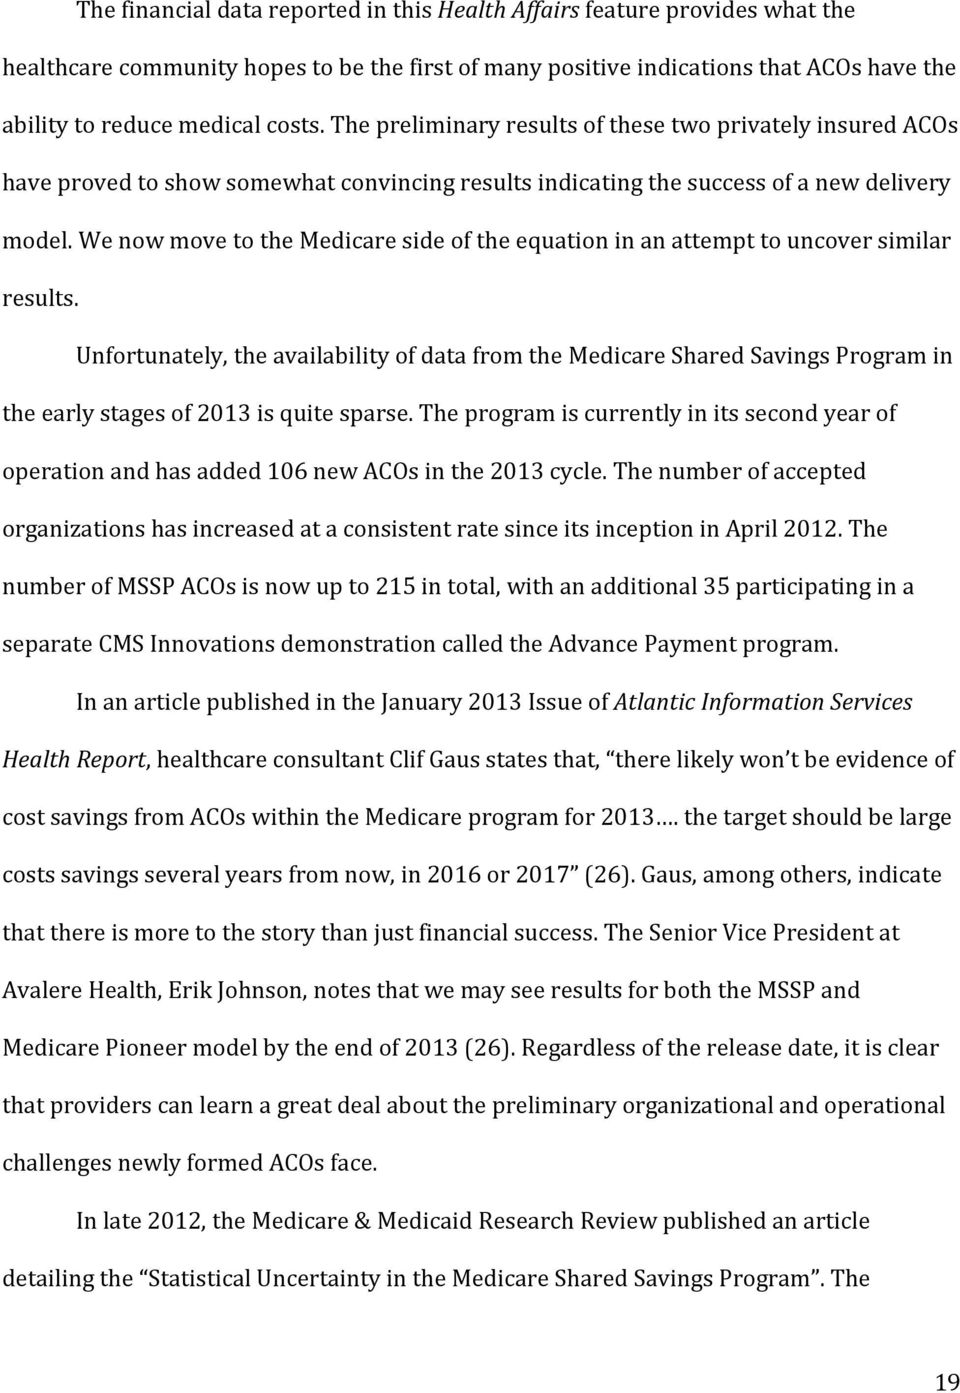 We now move to the Medicare side of the equation in an attempt to uncover similar results.